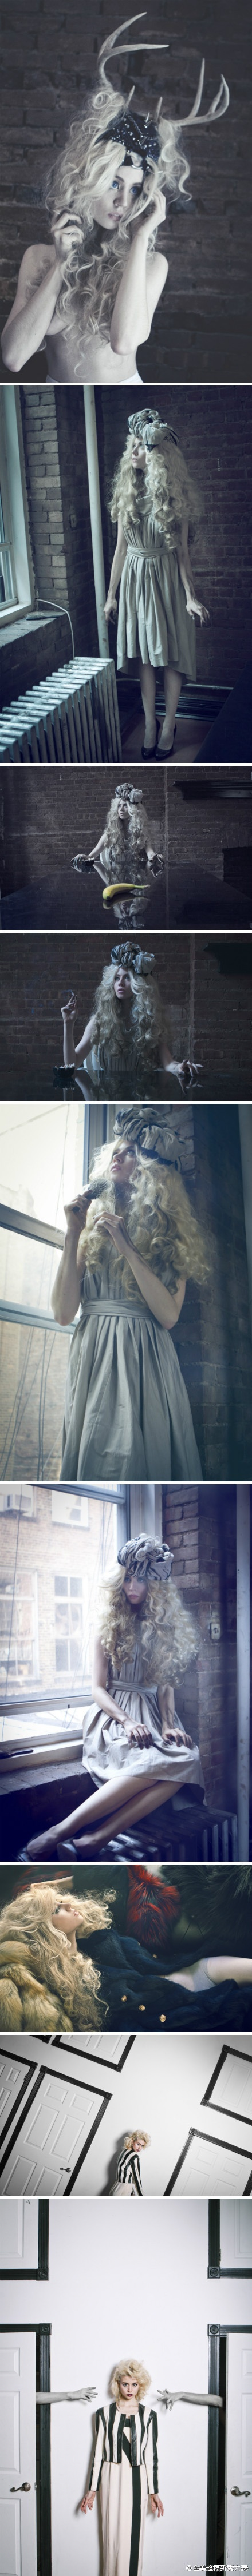 Model: Allison Harvard Link does not provide photographer.